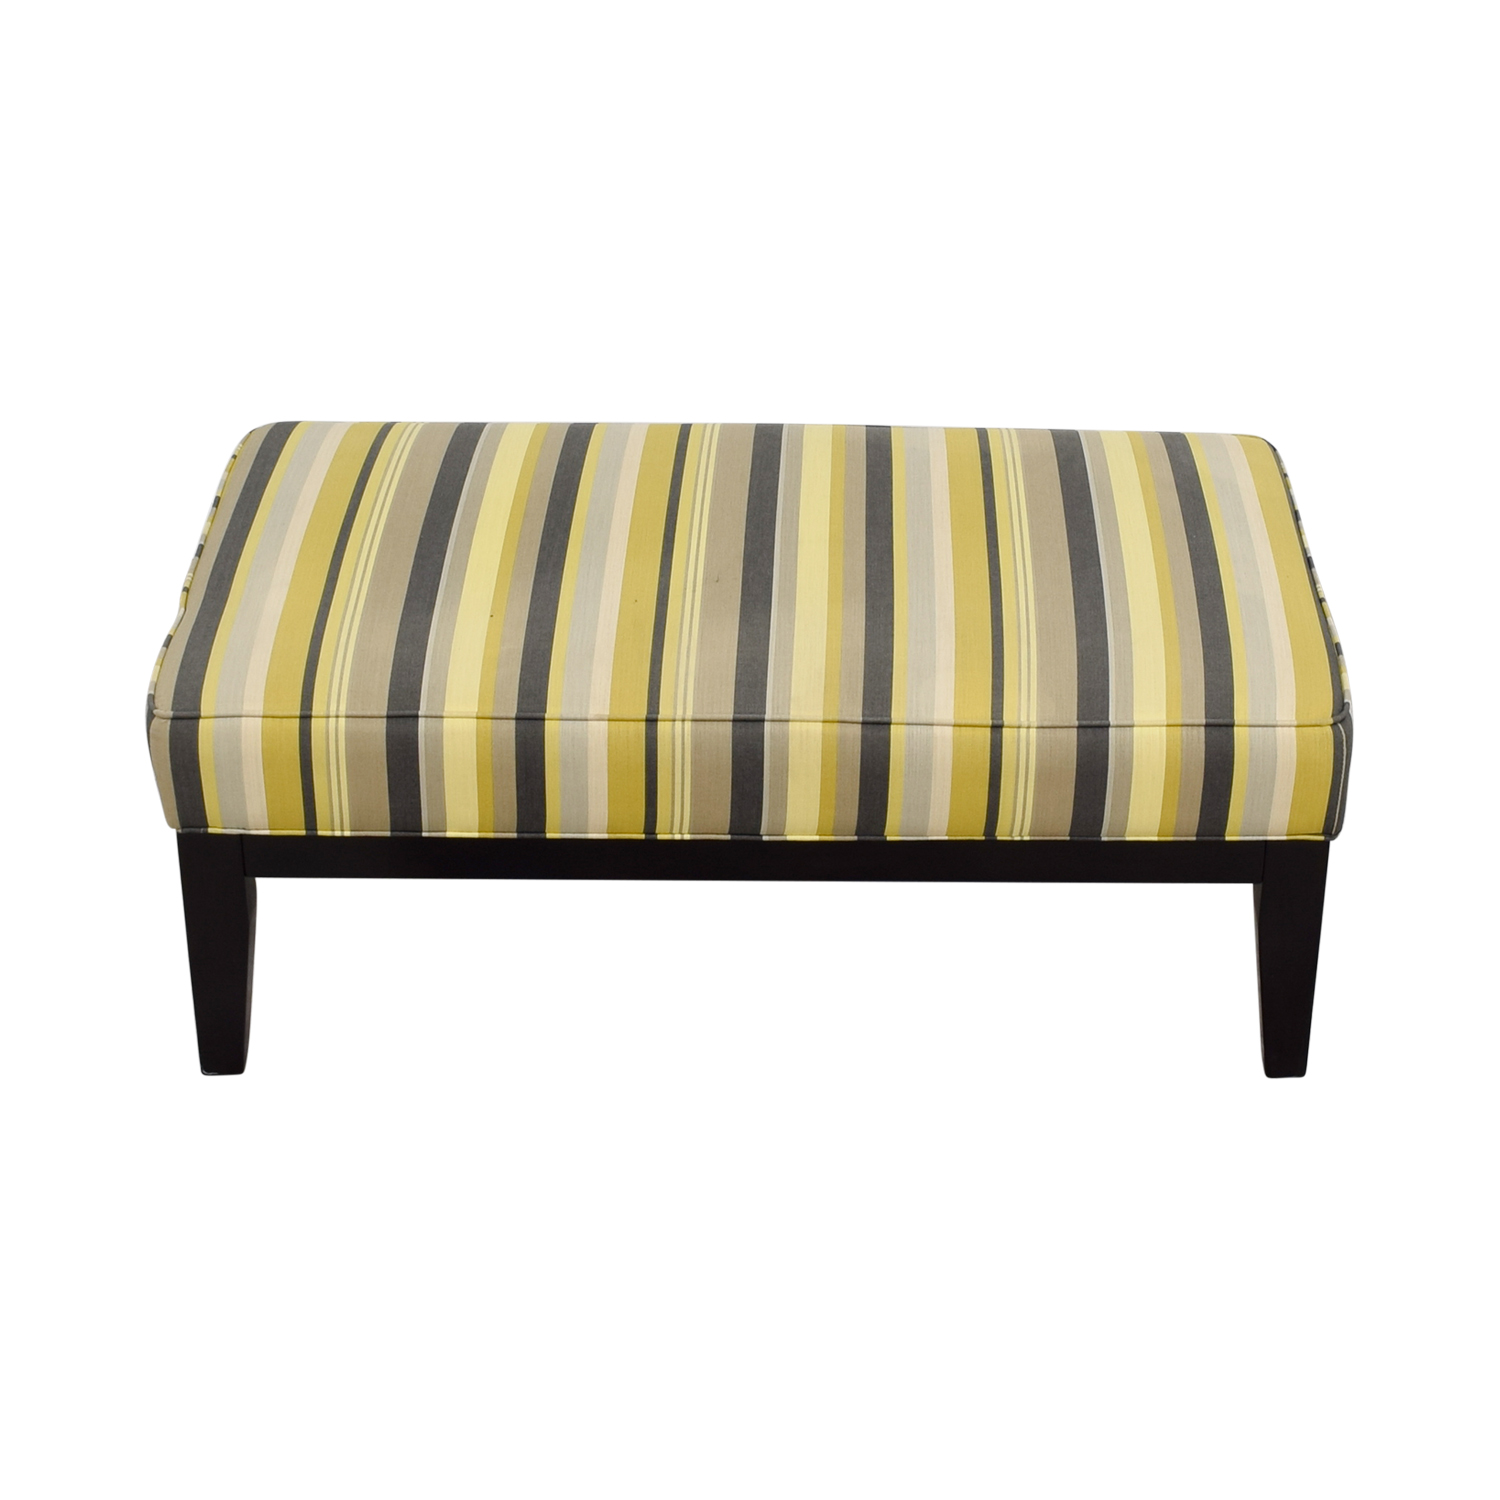 Awe Inspiring 49 Off Raymour Flanigan Raymour Flanigan Yellow Green And Grey Striped Oversized Ottoman Chairs Bralicious Painted Fabric Chair Ideas Braliciousco